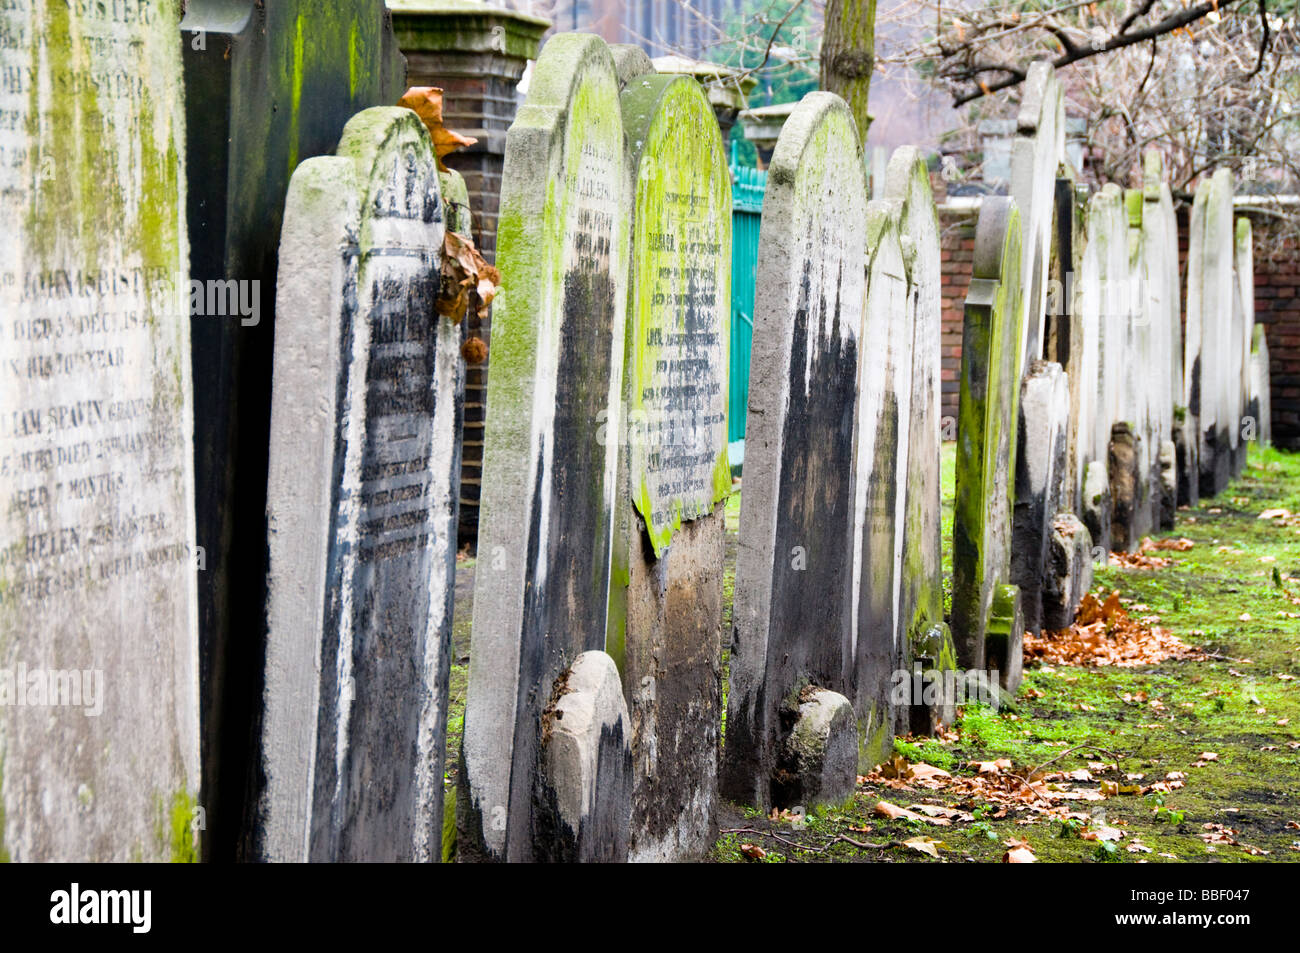 Bunhill Fields Cemetery, London, UK - Stock Image